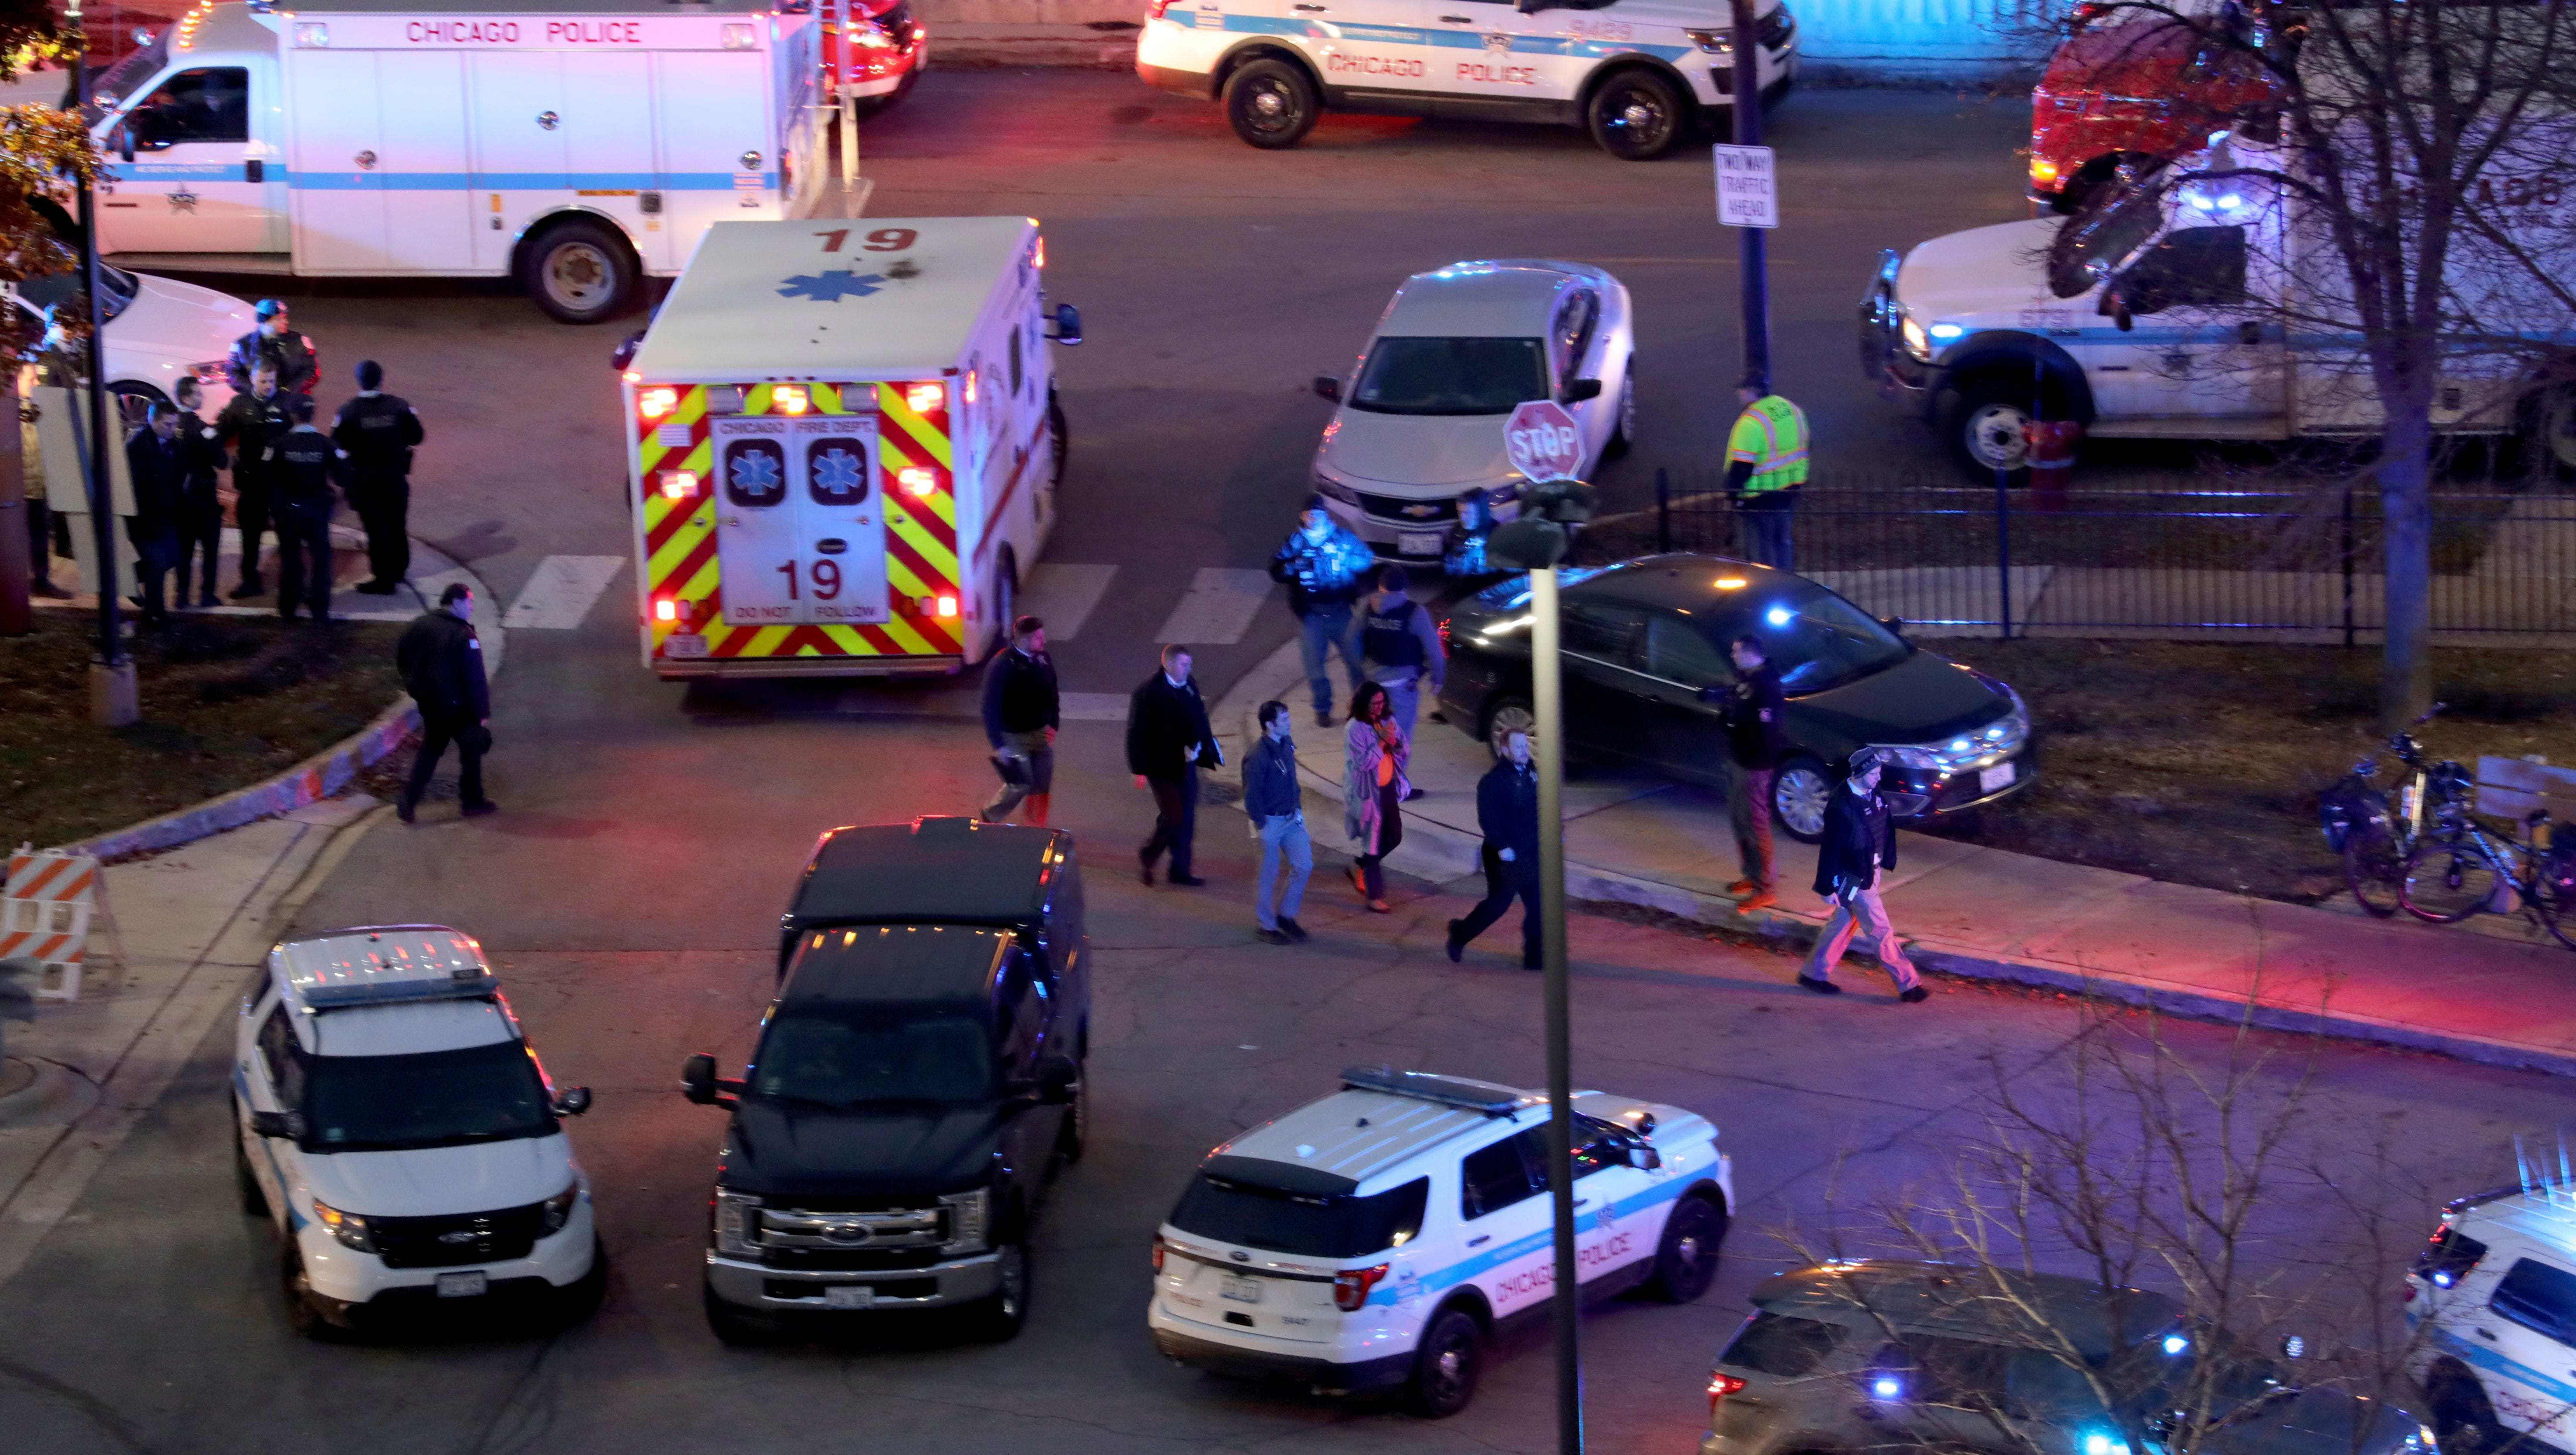 Law enforcement officials work near Mercy Hospital in Chicago, Monday, Nov. 19, 2018. A shooting at the Chicago hospital left four people, including two hospital workers and a police officer, dead.